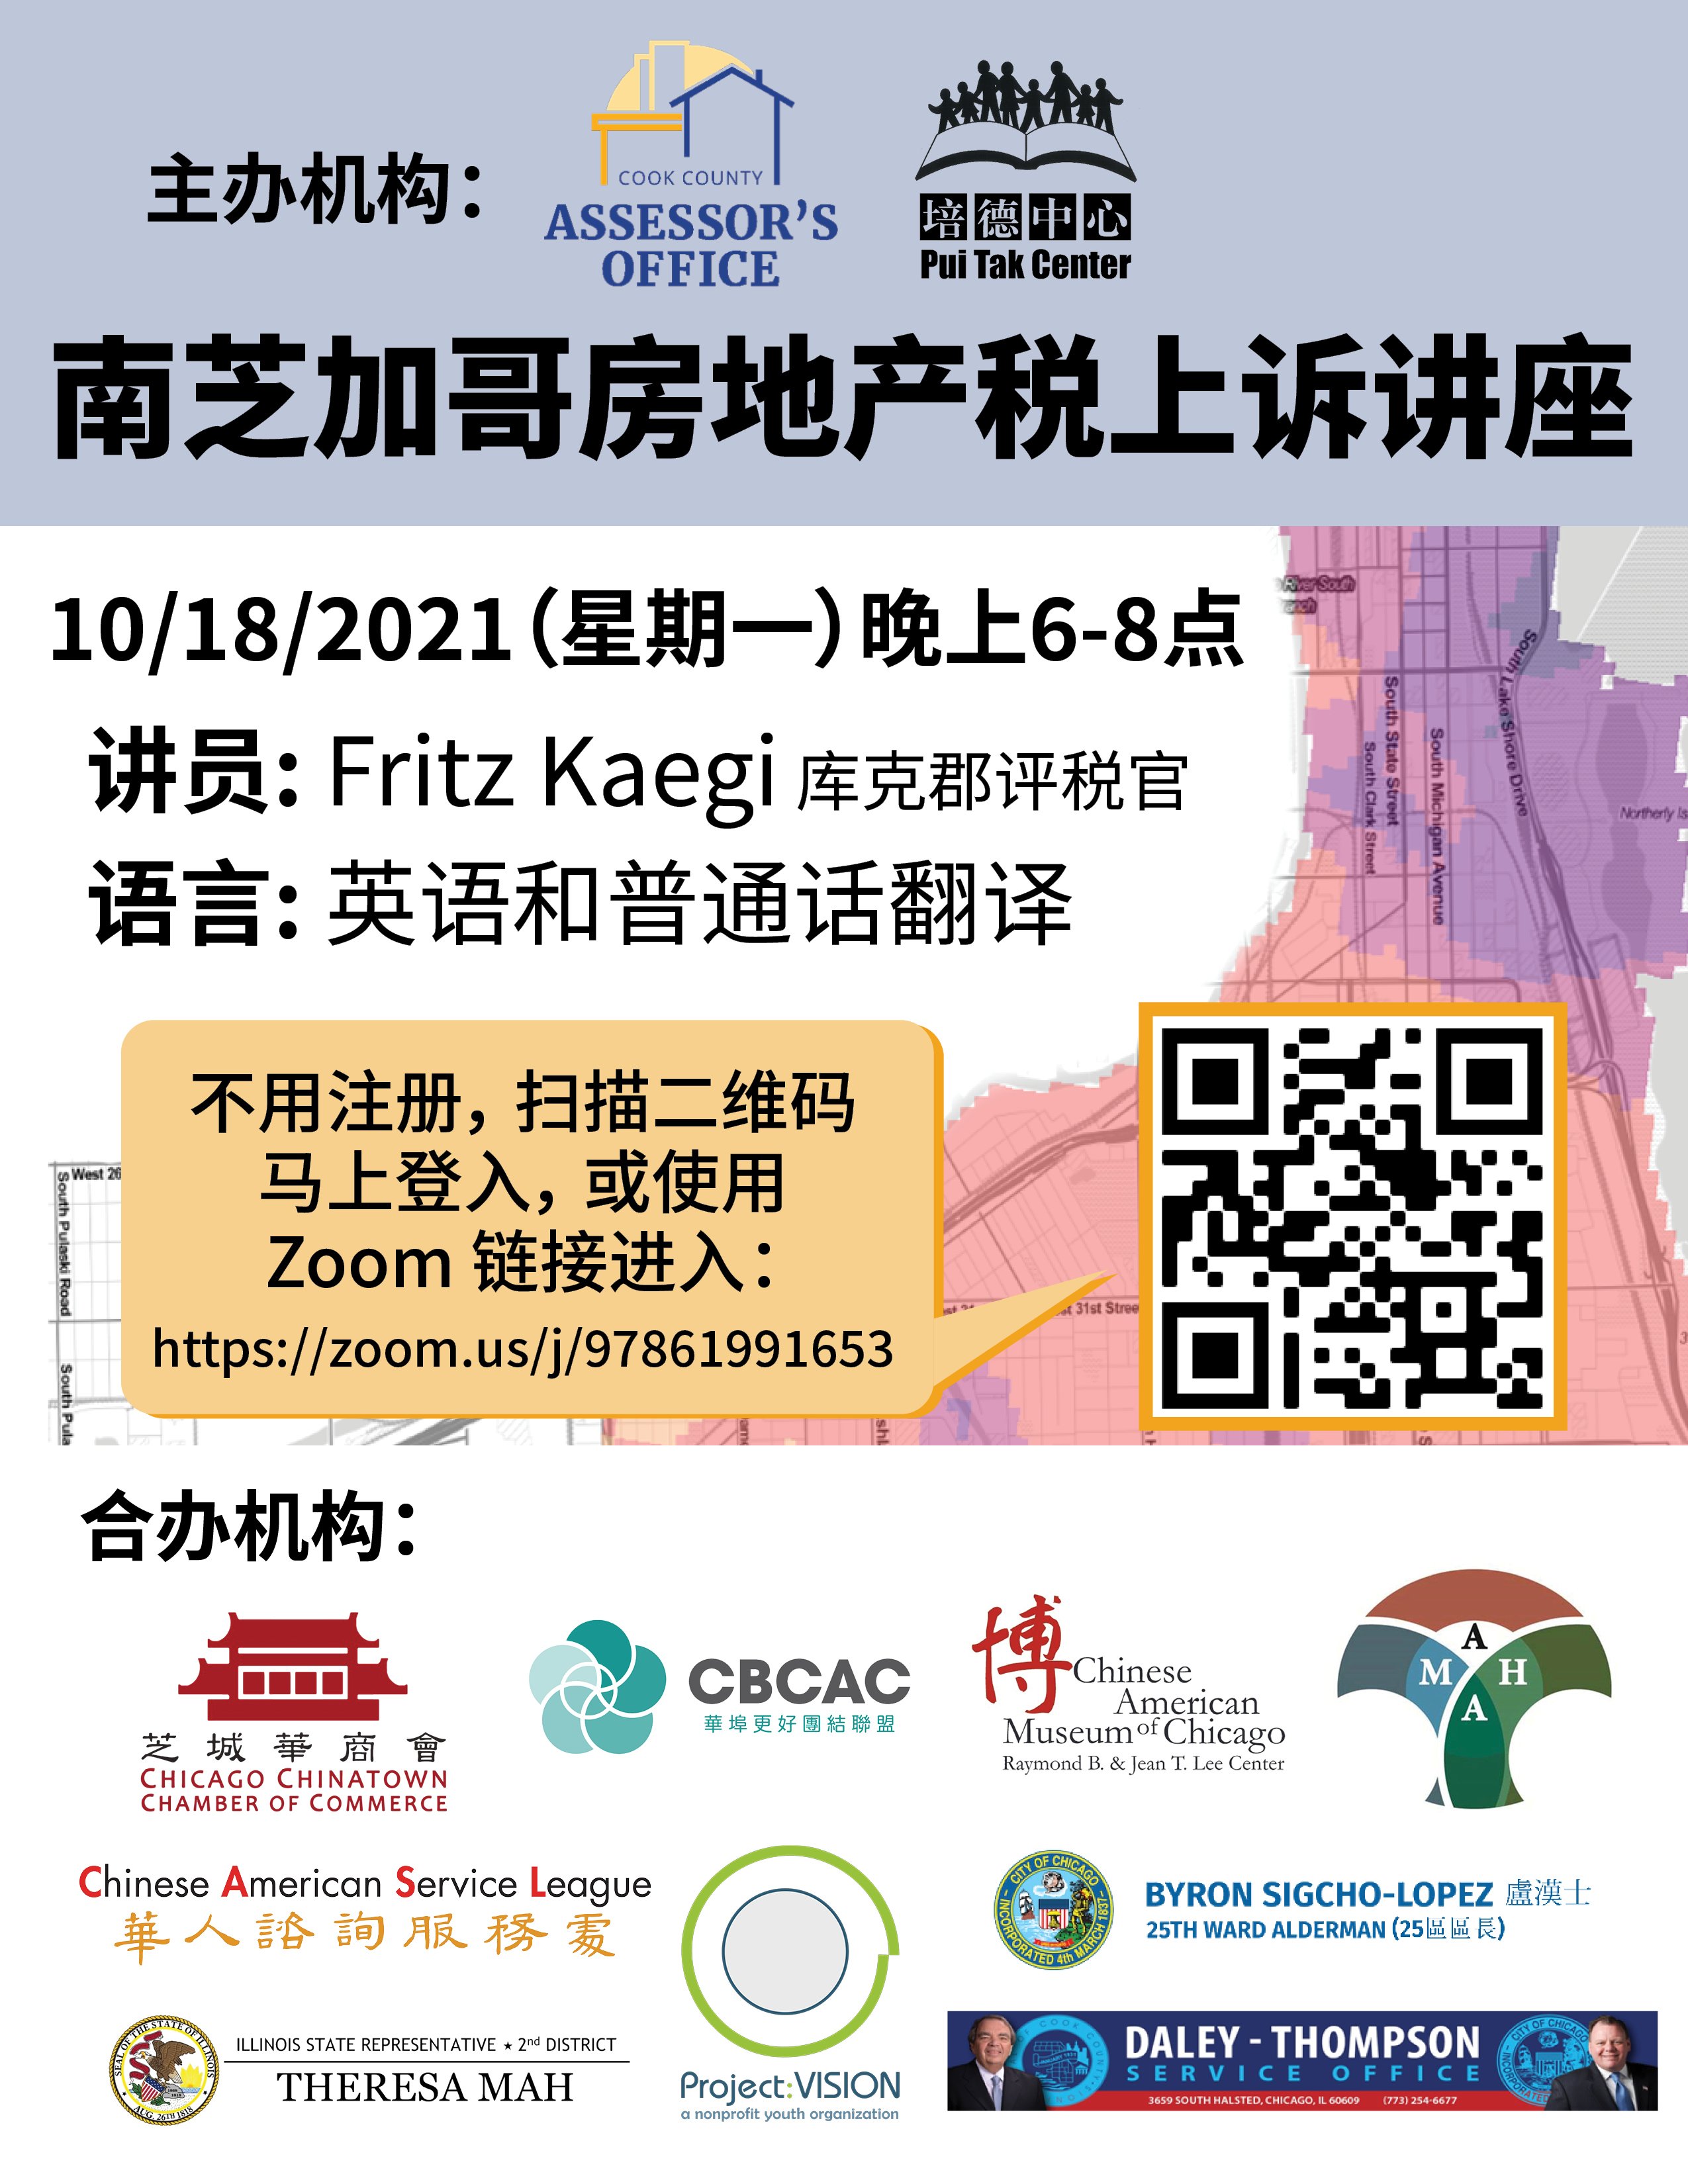 Flyer in Chinese